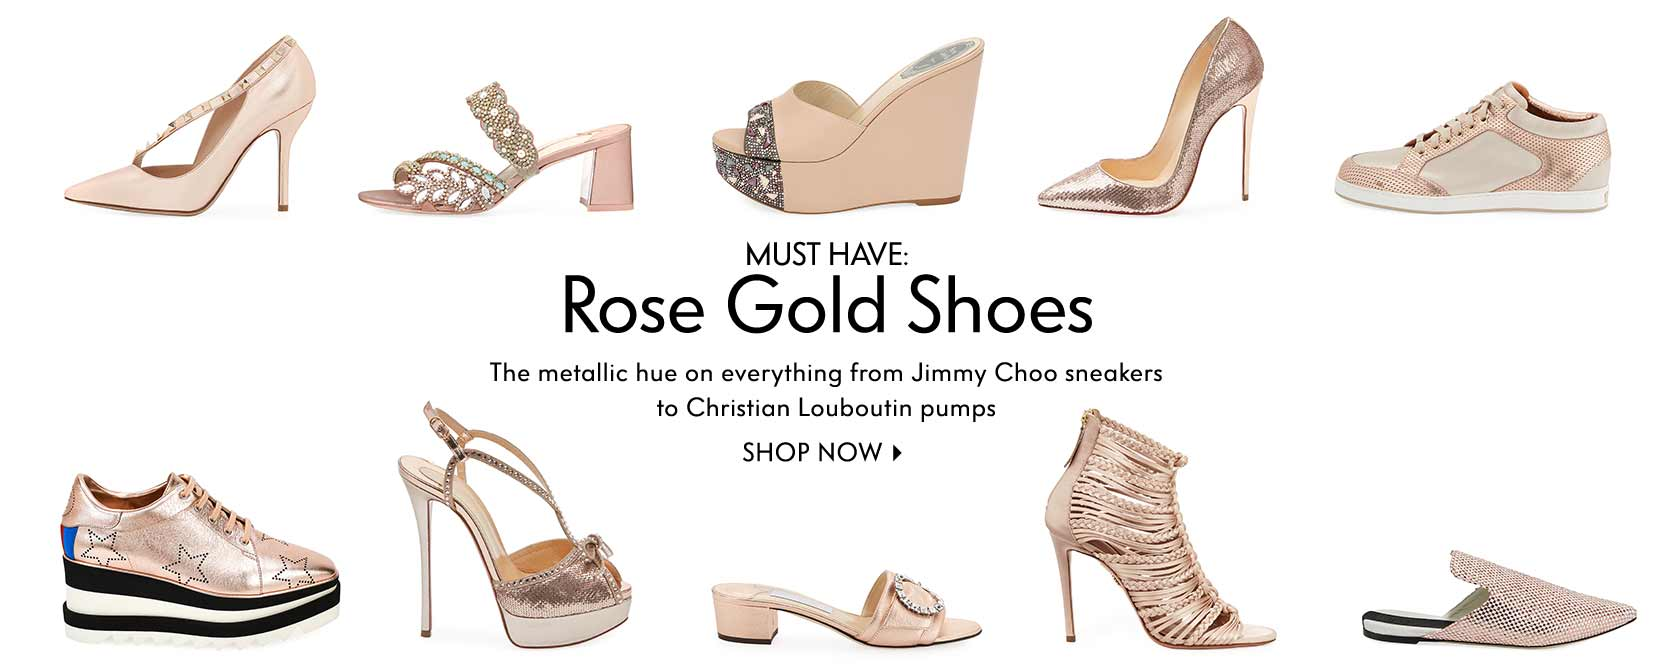 Must Have: Rose Gold Shoes The metallic hue on everything from Jimmy Choo sneakers to Christian Louboutin pumps